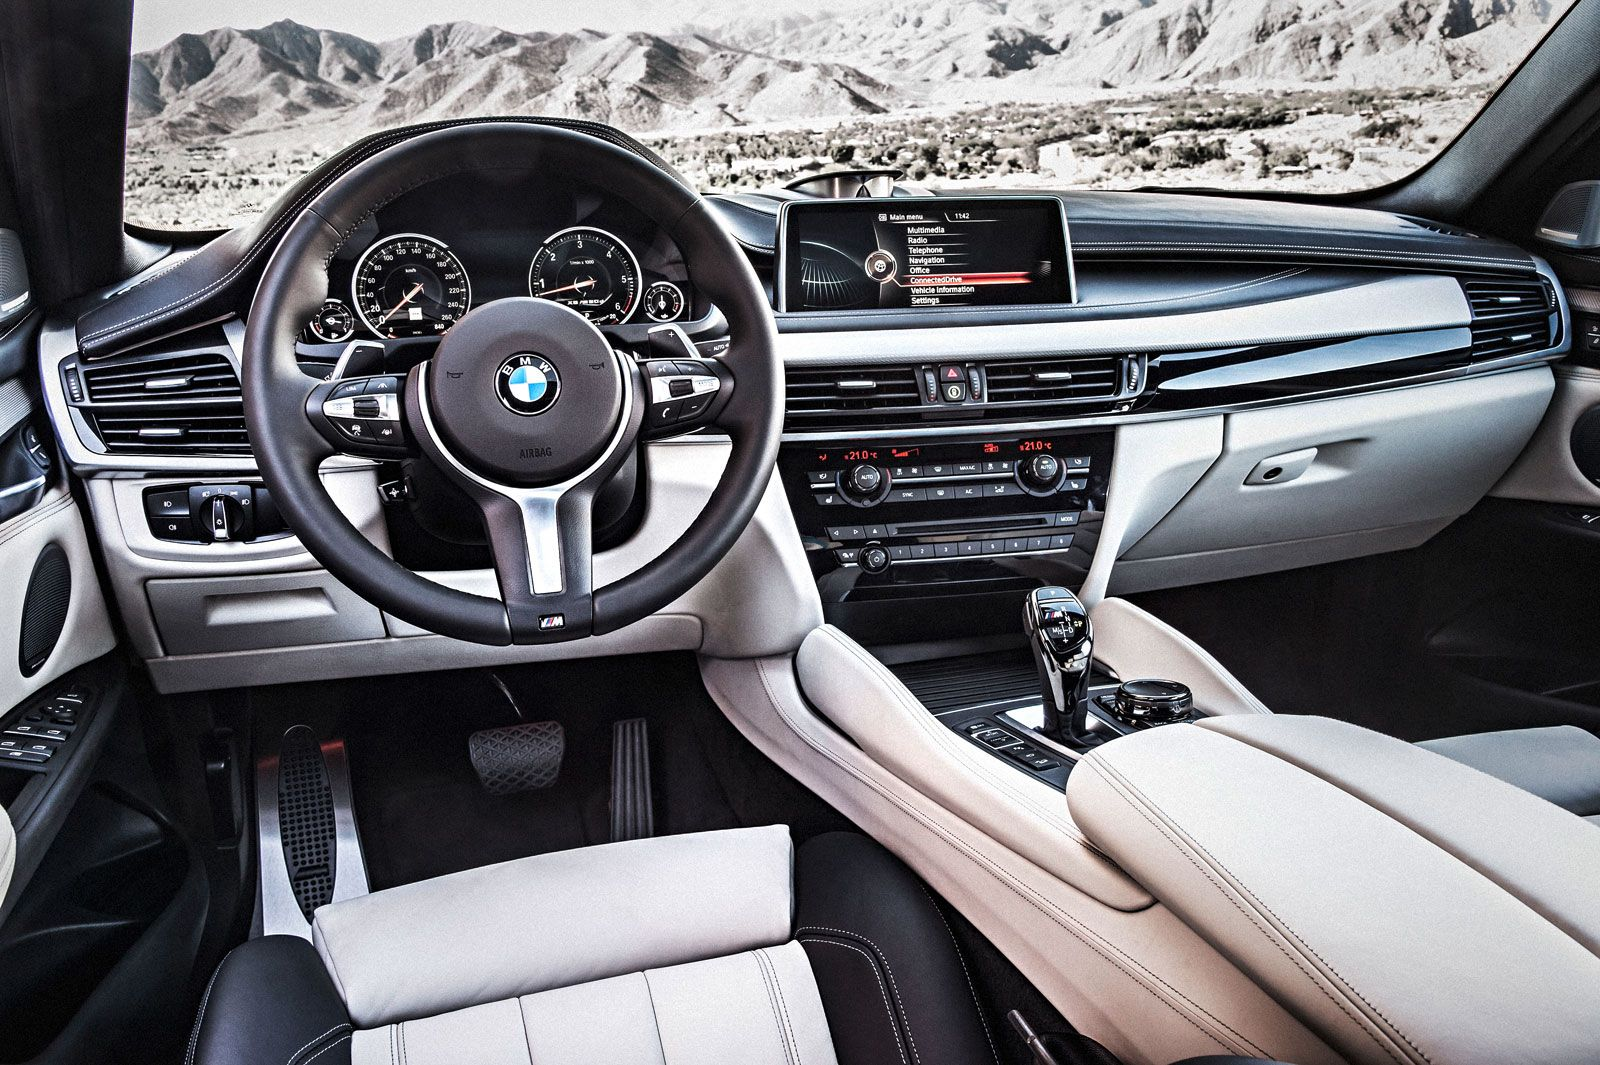 New Bmw X6 Interior Car Body Design Bmw Suv Bmw X6 Bmw X6 Interior